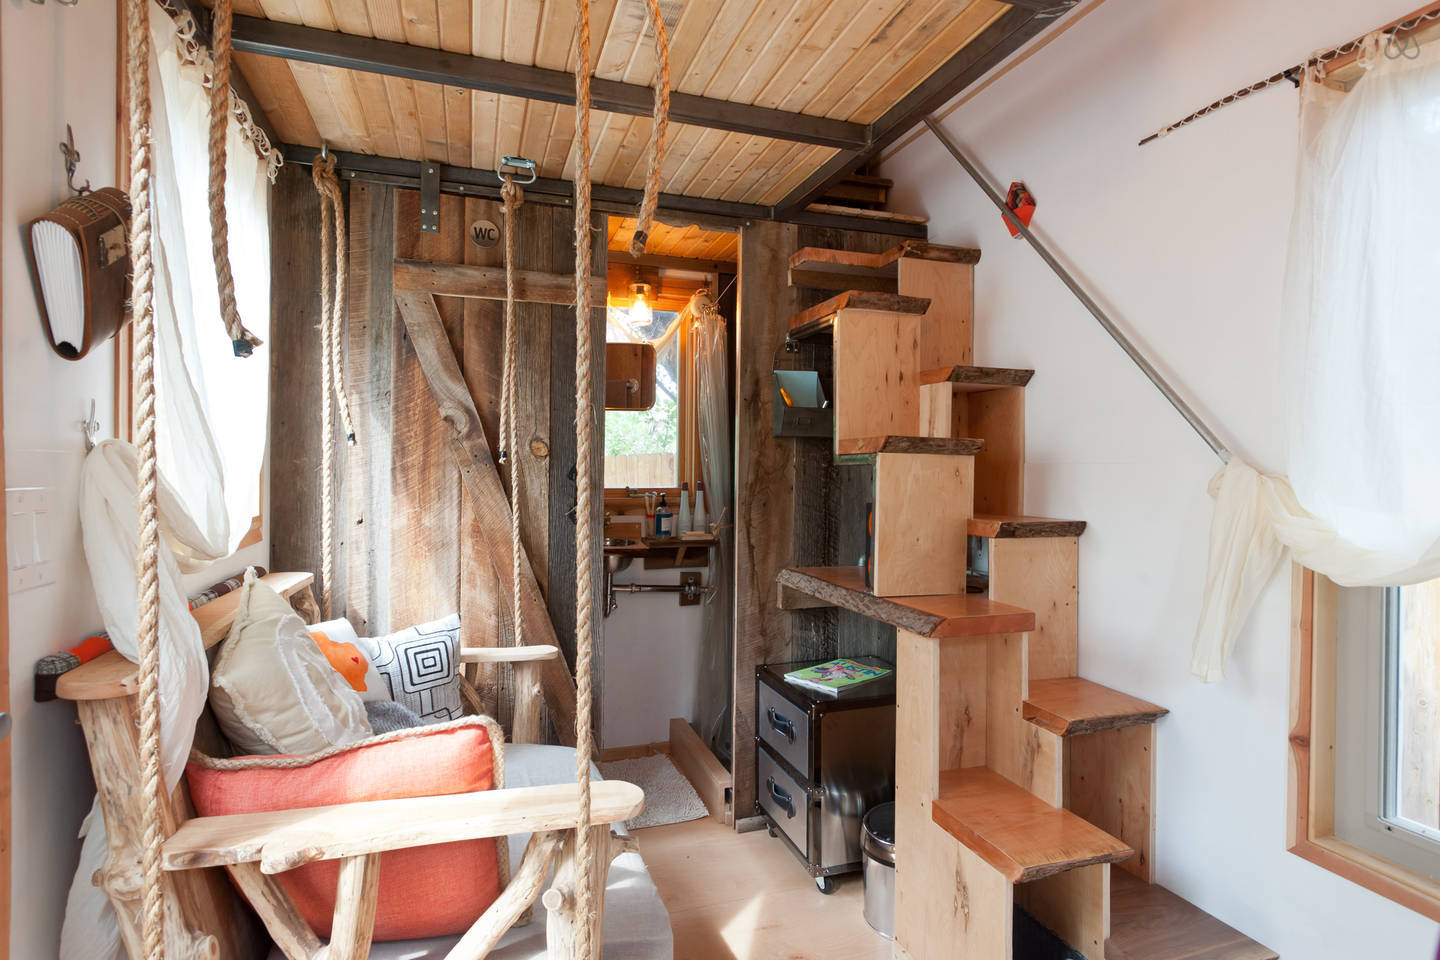 Charmant Images Via Tiny House Living · Hip East Side Tiny Pad Interior